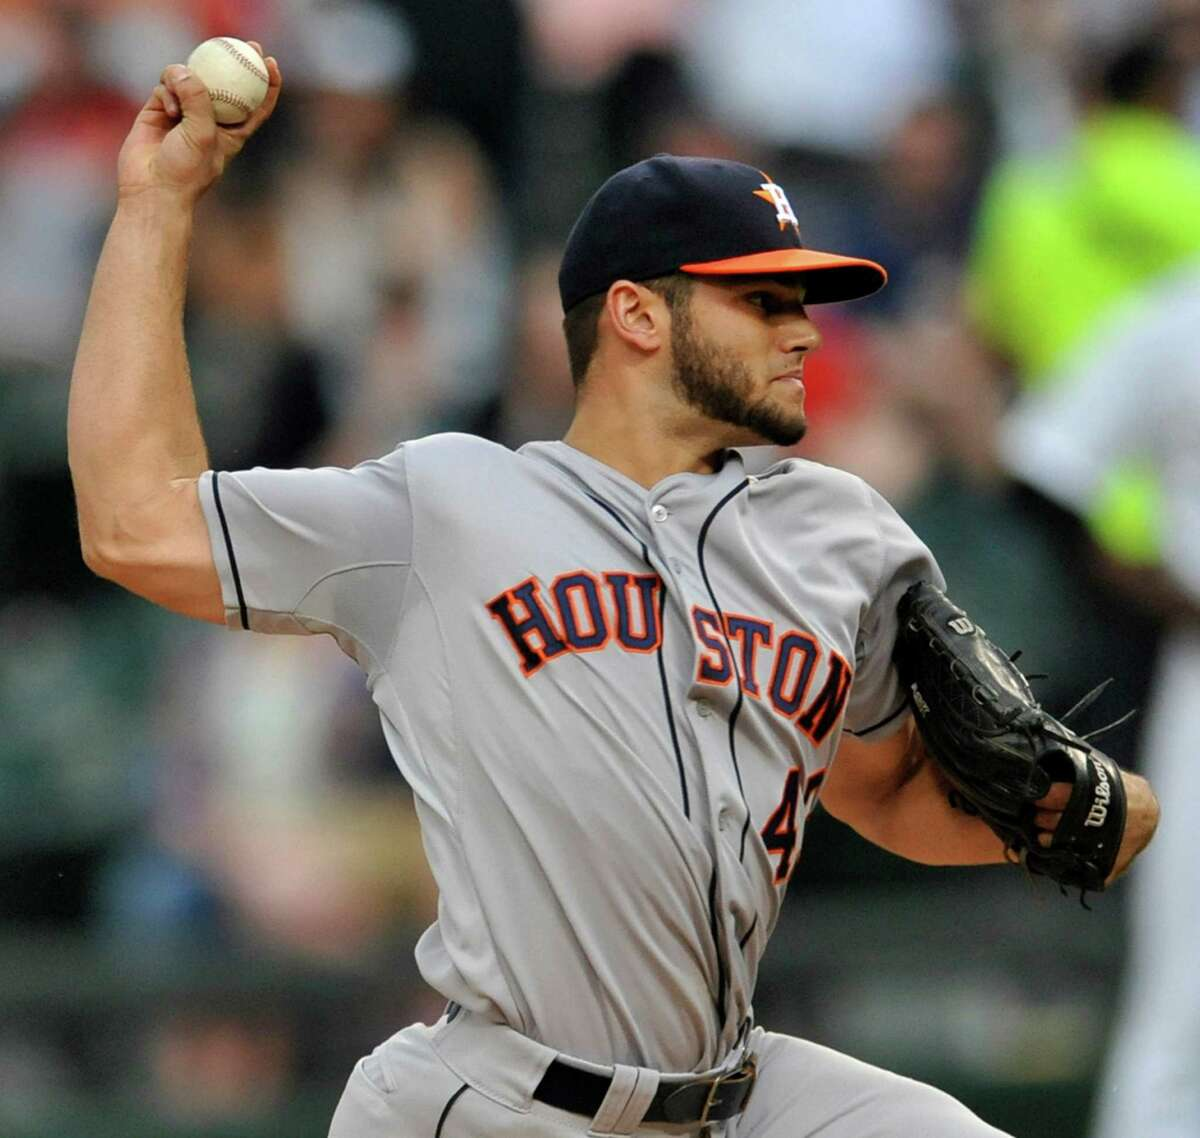 Houston Astros starter Lance McCullers delivers a pitch during the first inning of an inter league baseball game against the Chicago White Sox Monday, June 8, 2015 in Chicago. (AP Photo/Paul Beaty)